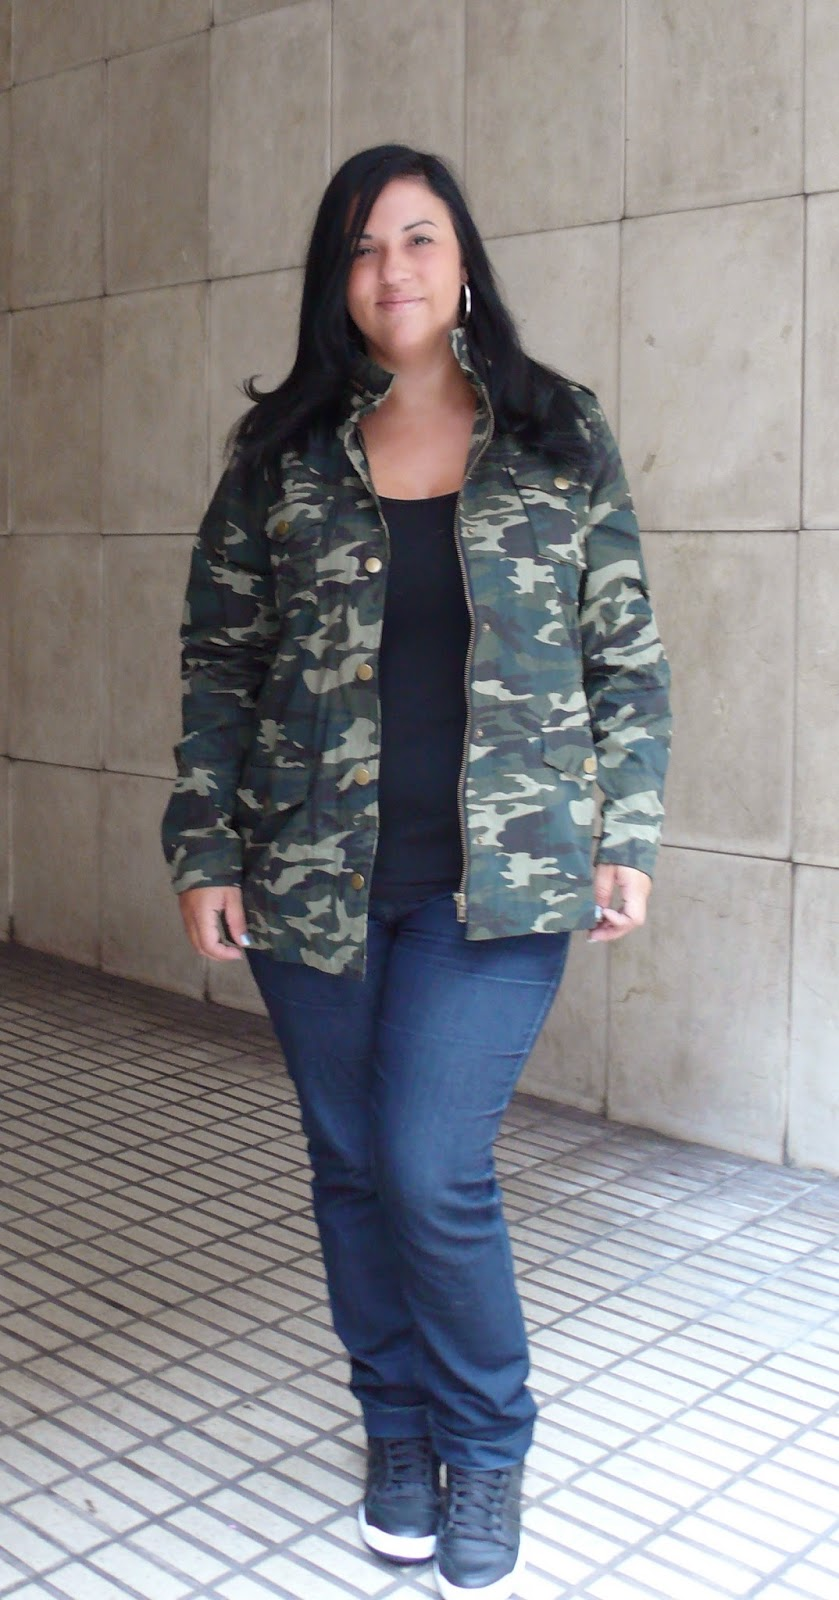 http://www.frontrowshop.com/product/camouflage-jacket?ceid=2283